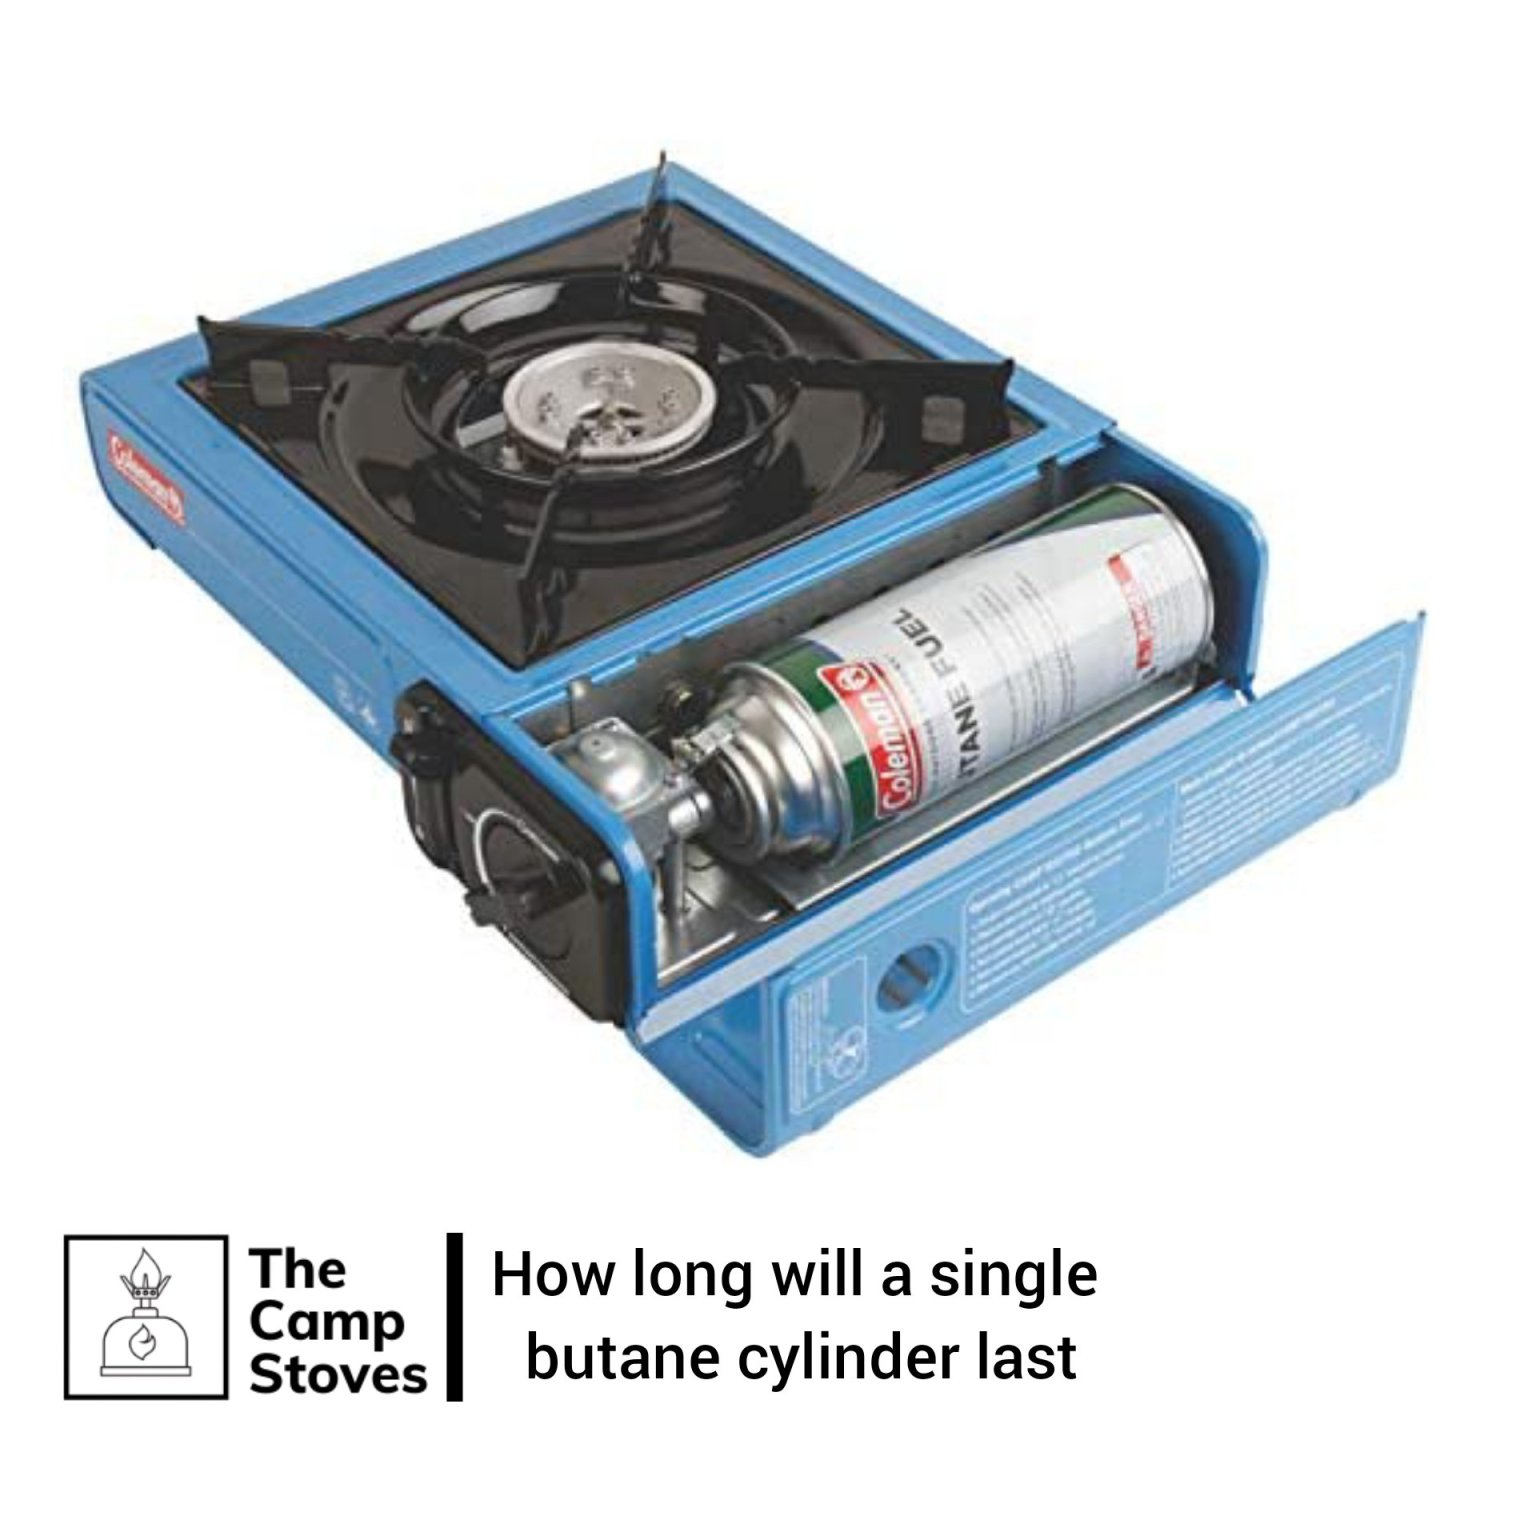 How long will a single butane cylinder last